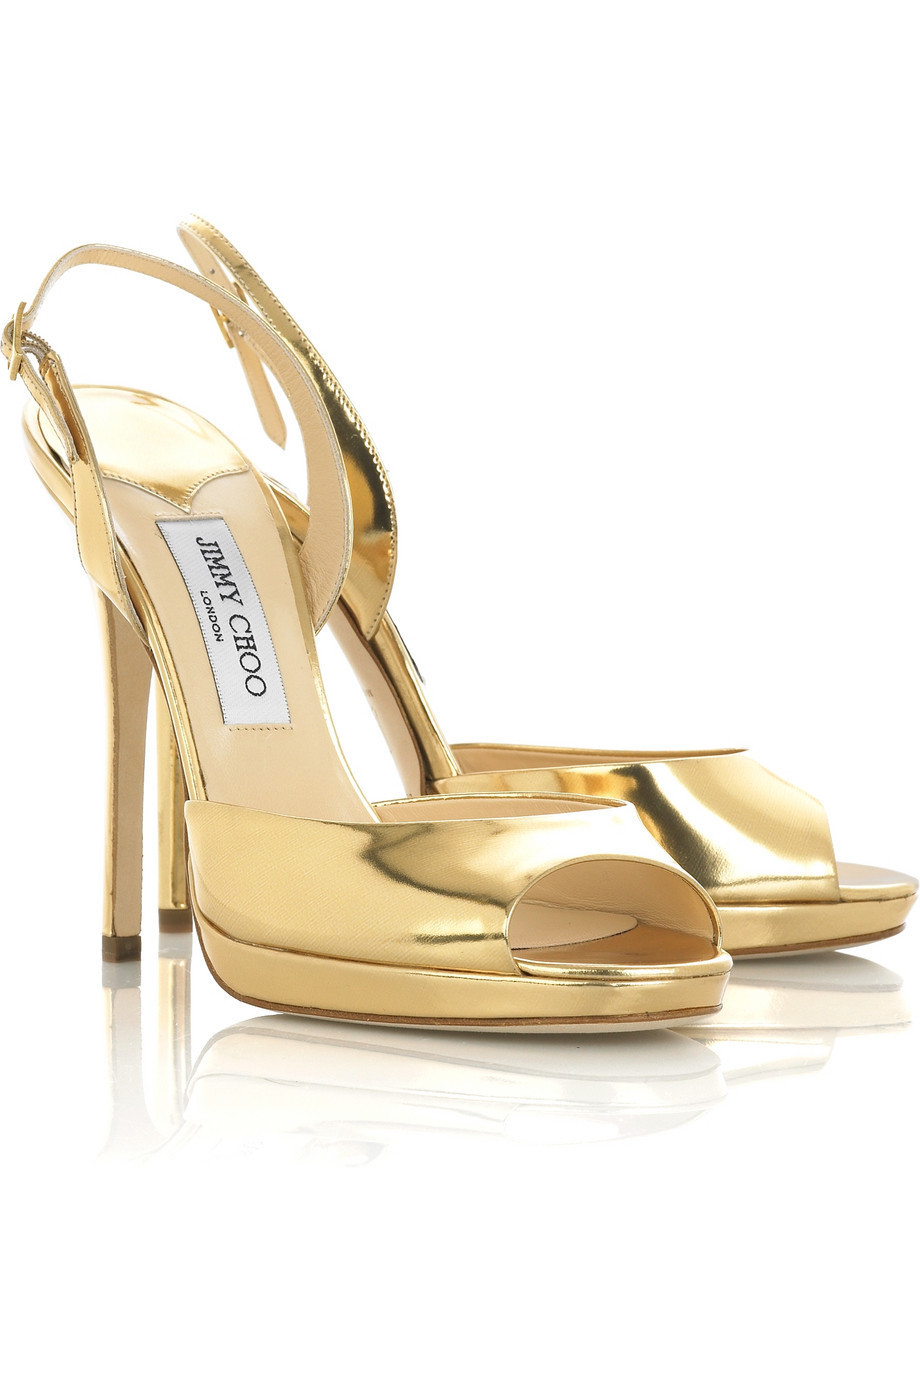 Germany Jimmy Choo Sandals - Product 33466